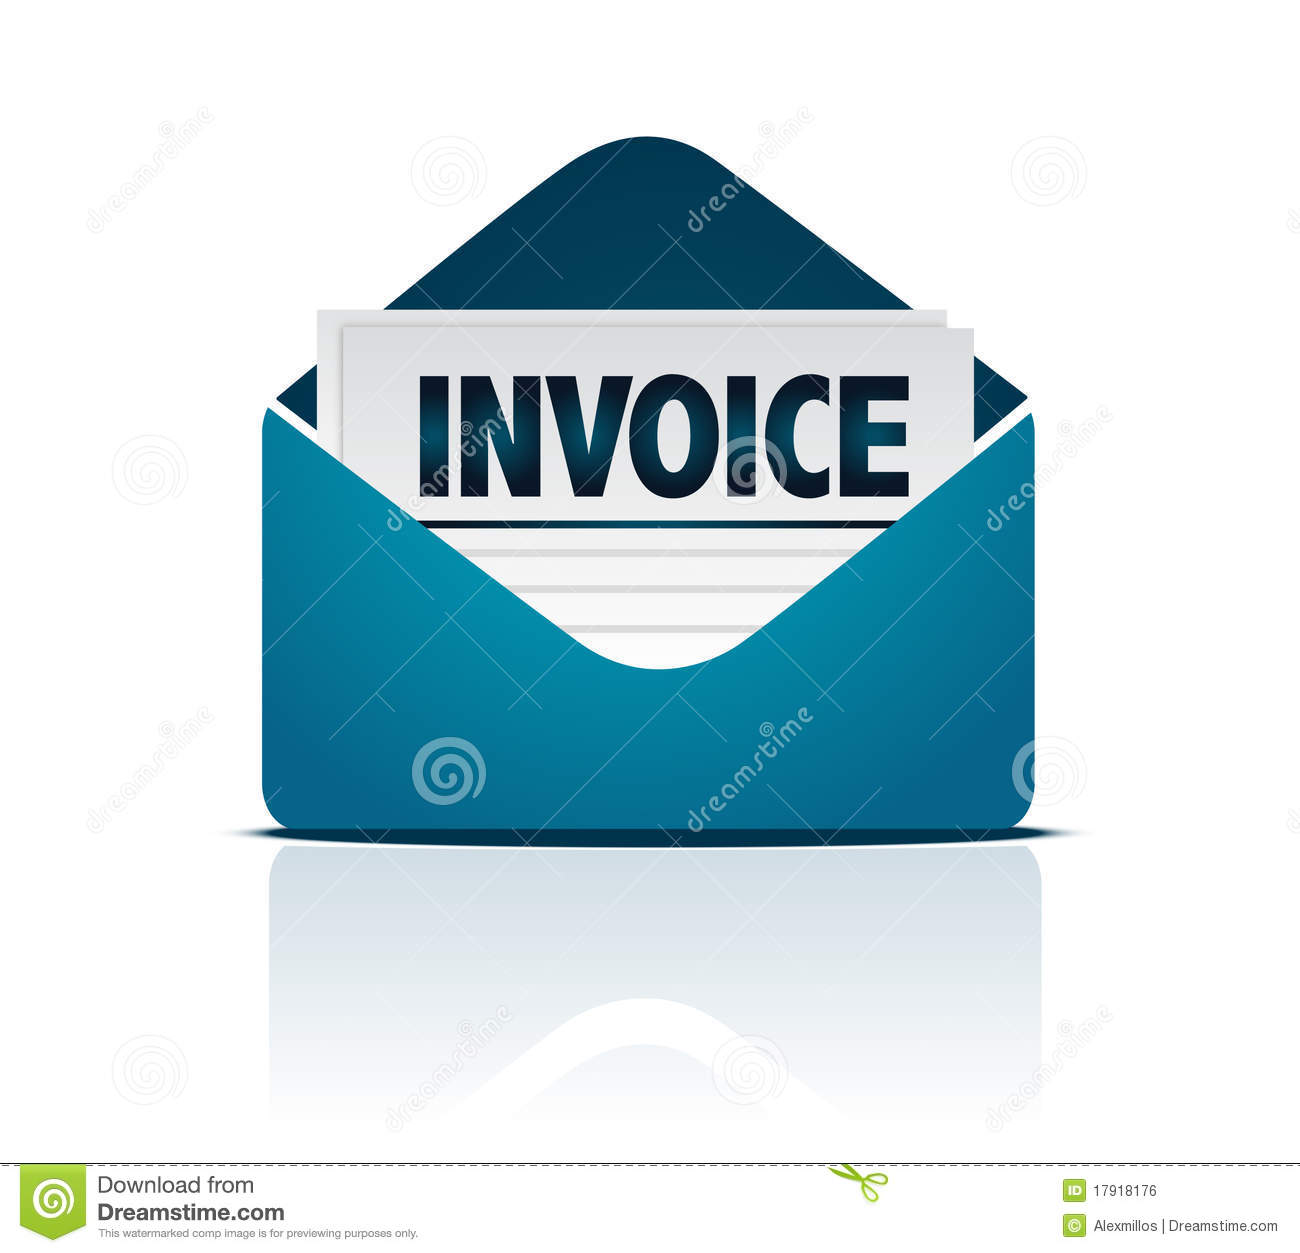 Sample Of A Invoice Excel Invoice Stock Illustrations   Invoice Stock Illustrations  Vendors Invoice Excel with Request A Delivery Receipt Excel Invoice With Envelope Royalty Free Stock Image Microsoft Word 2010 Invoice Template